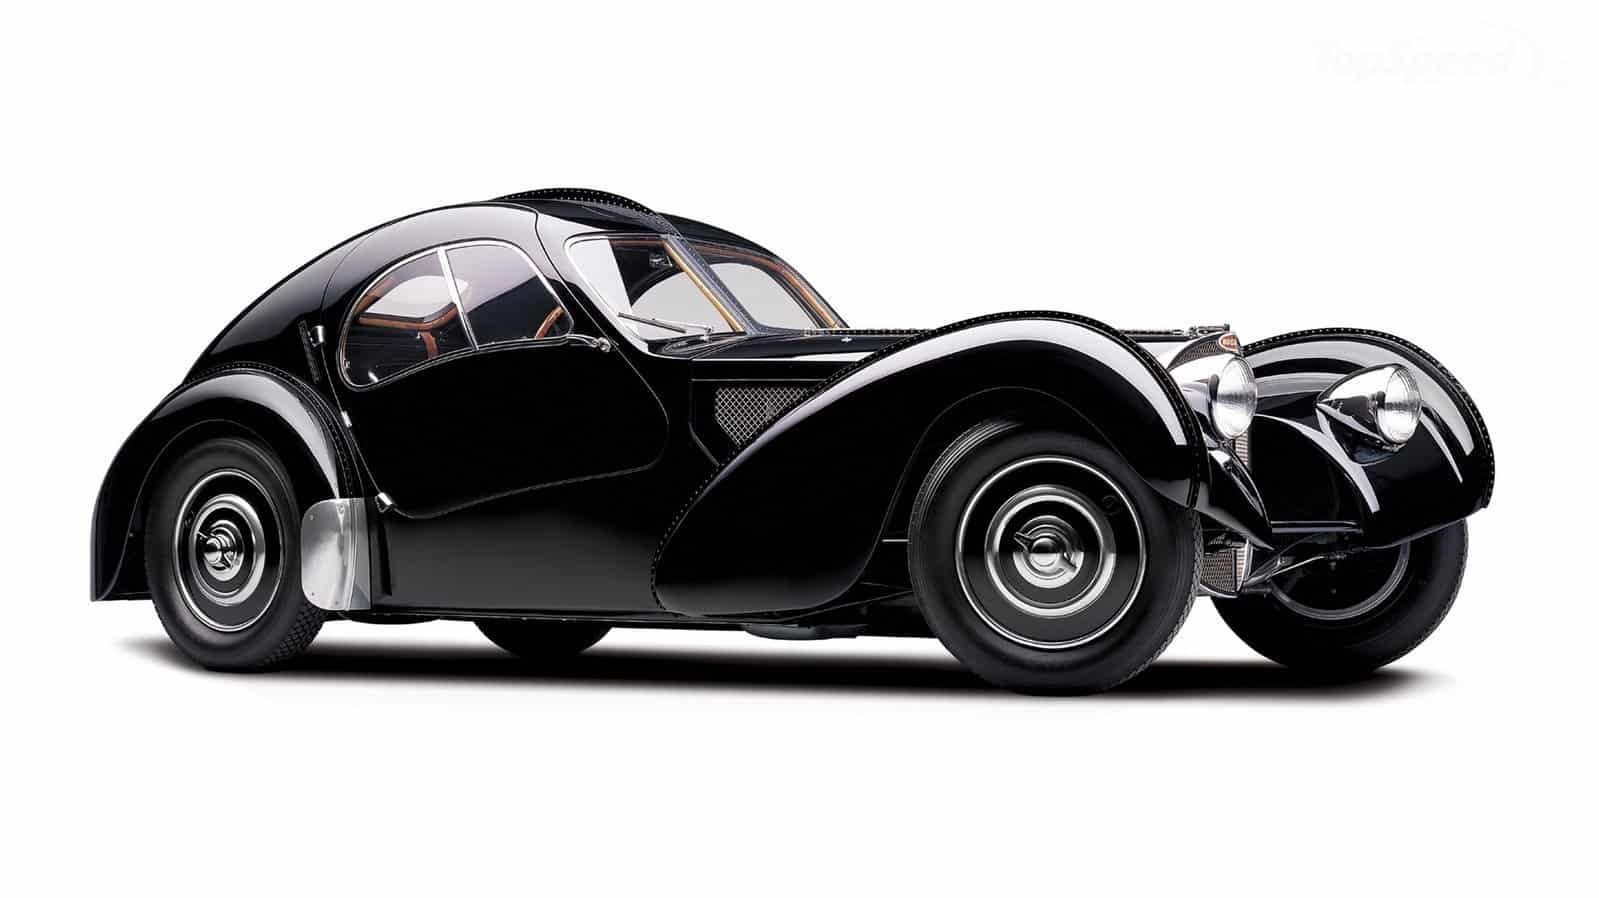 Ralph Lauren's $40 million Bugatti - CARLIC on bugatti z type, bugatti prototypes, bugatti finale, bugatti type 57, bugatti eb110, bugatti type 55, mercedes-benz ssk, lamborghini lm002, porsche 911 gt3, mercedes-benz 300sl, bugatti type 101, bugatti speed, bugatti tires, bugatti royale, bugatti type 35, bugatti hennessey, bugatti type 46, cadillac v-16, bugatti fire, bugatti 4 door, bugatti tumblr, bugatti type 252, bugatti atlantic, bugatti sport, bugatti accident, bugatti type 10, bugatti eb118, bugatti hd, bugatti type 18, bugatti 16c galibier concept, ettore bugatti, bugatti veyron, bugatti type 53,